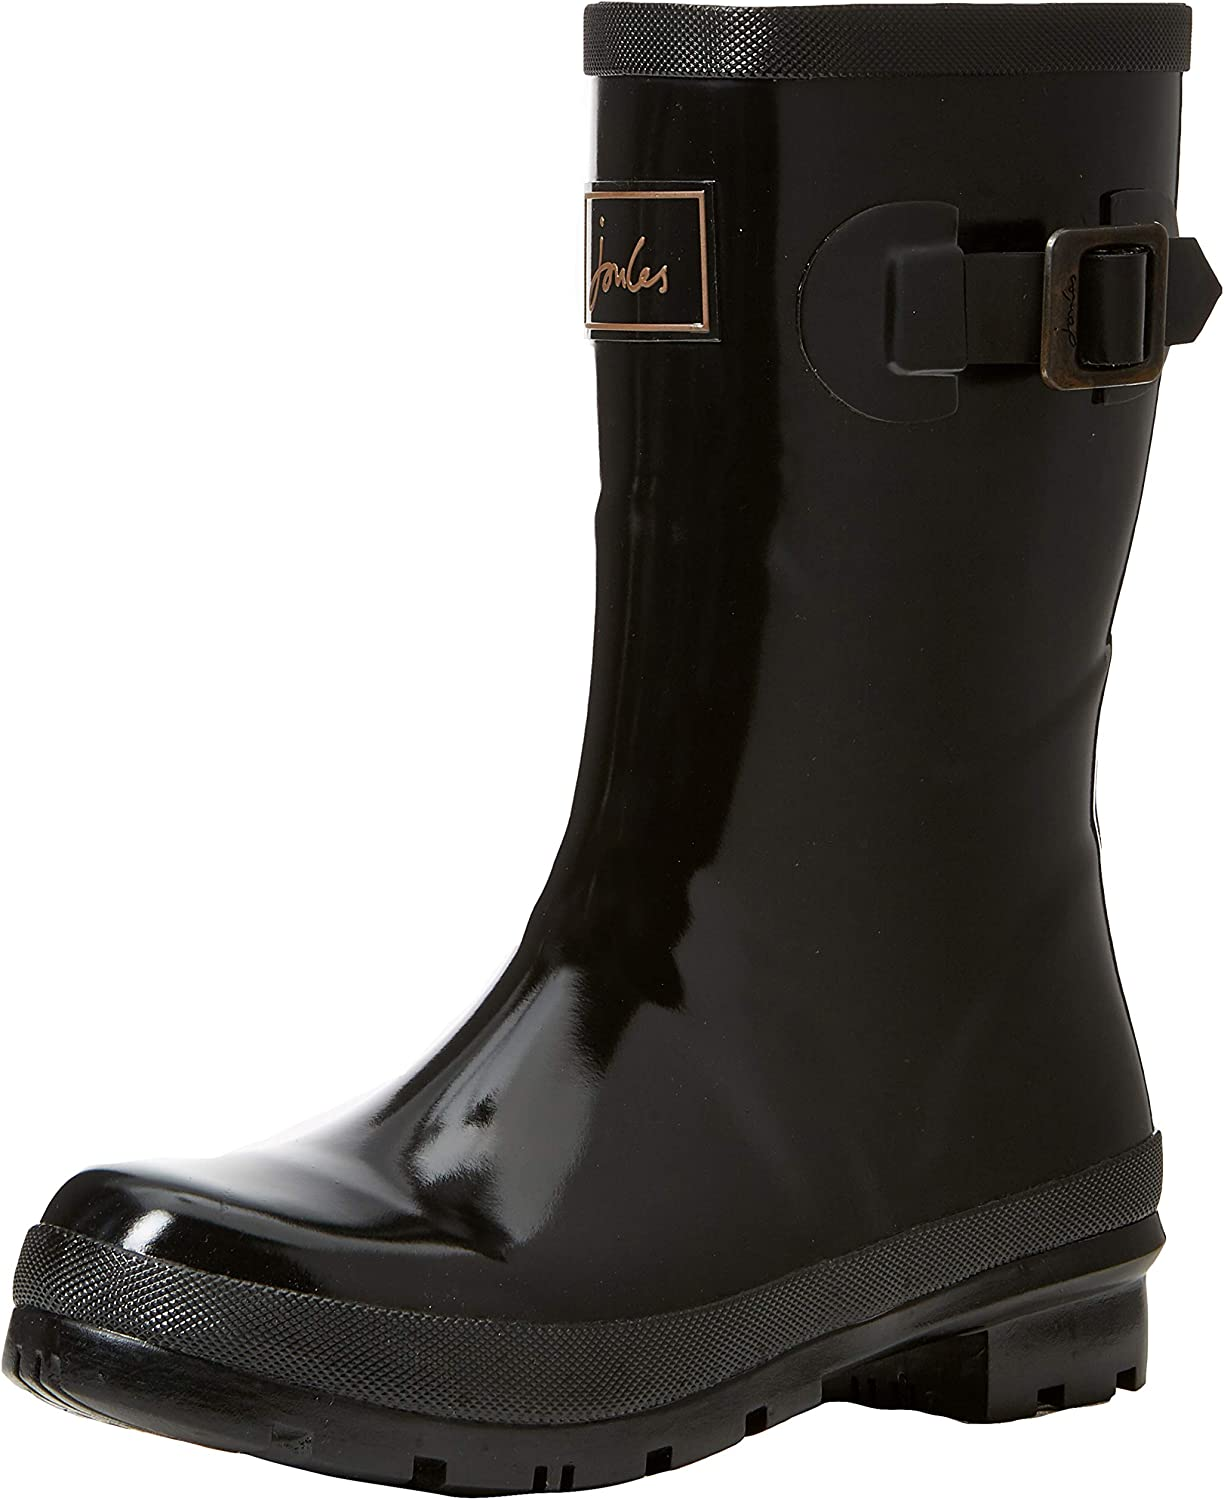 Joules Womens Kelly Welly Gloss